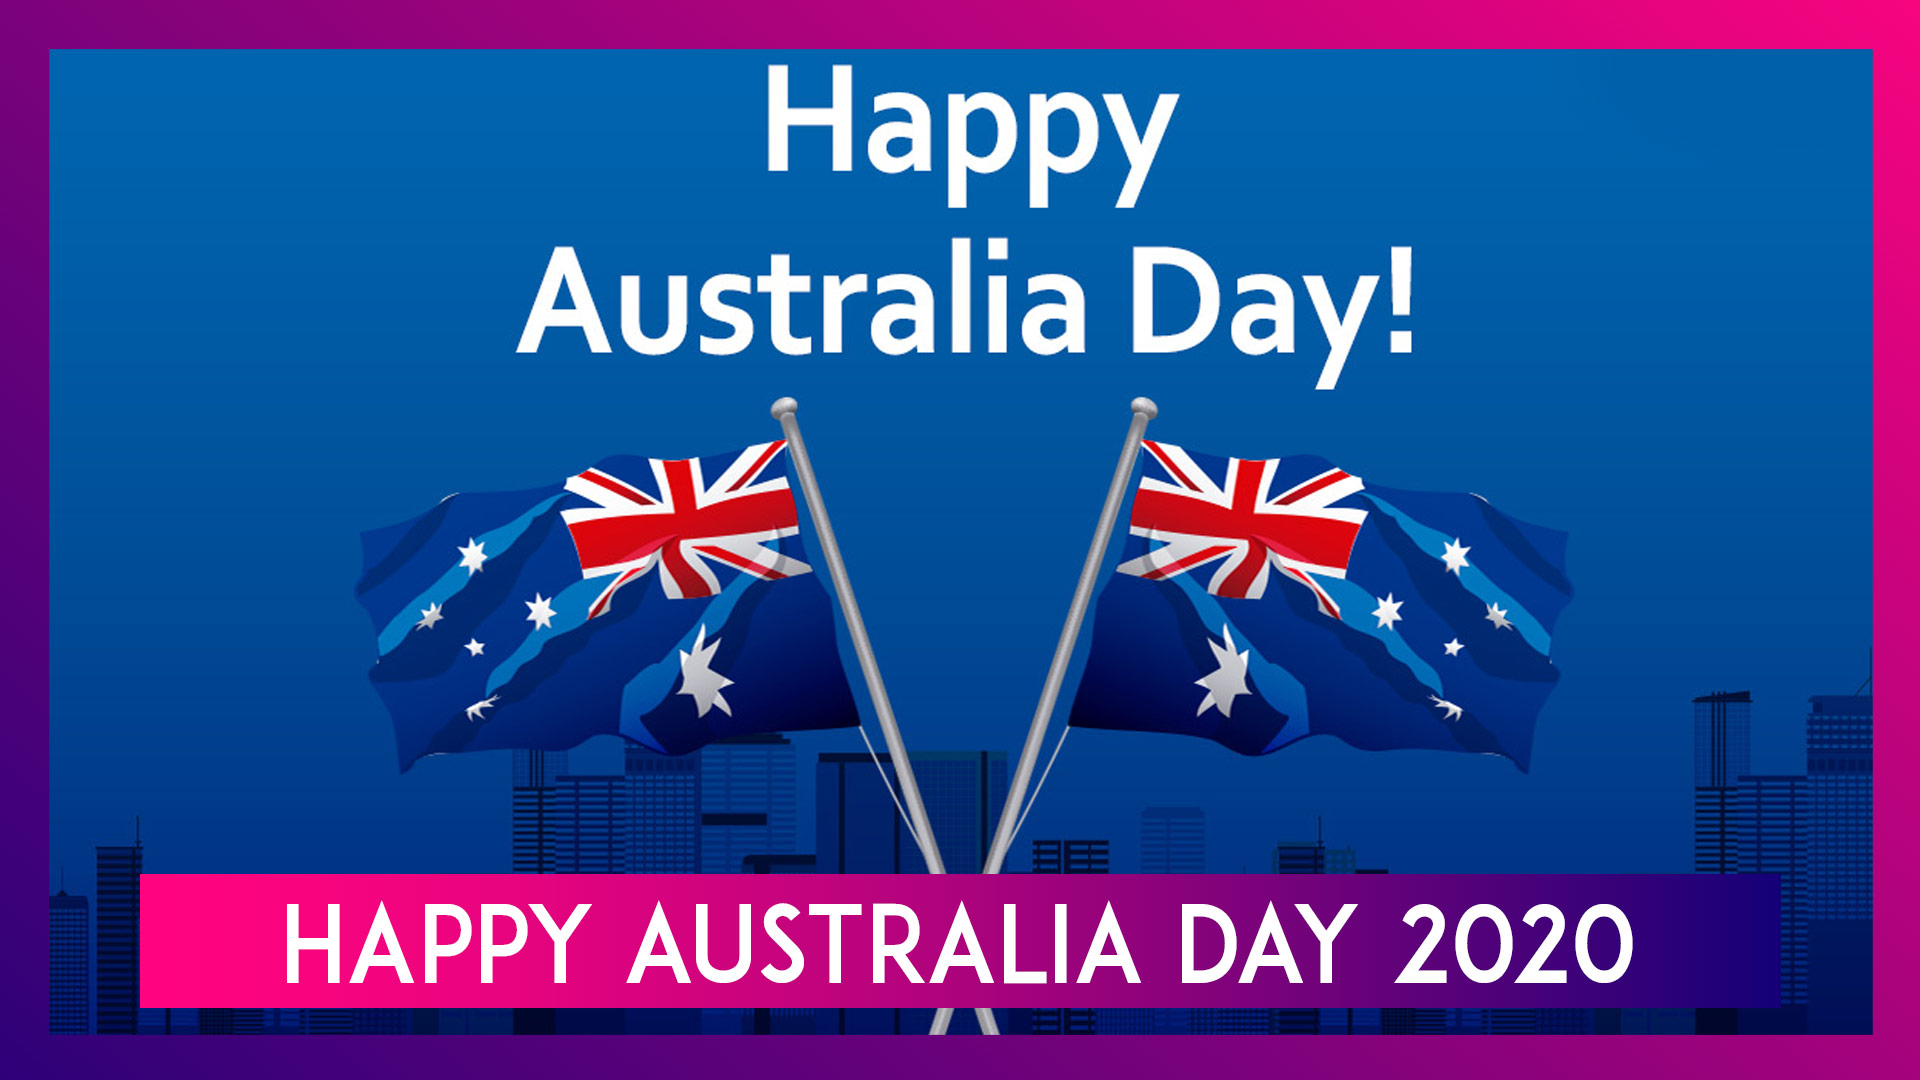 Australia Day 2020 Messages: Greetings & Images To Celebrate Official National Day Of Australia